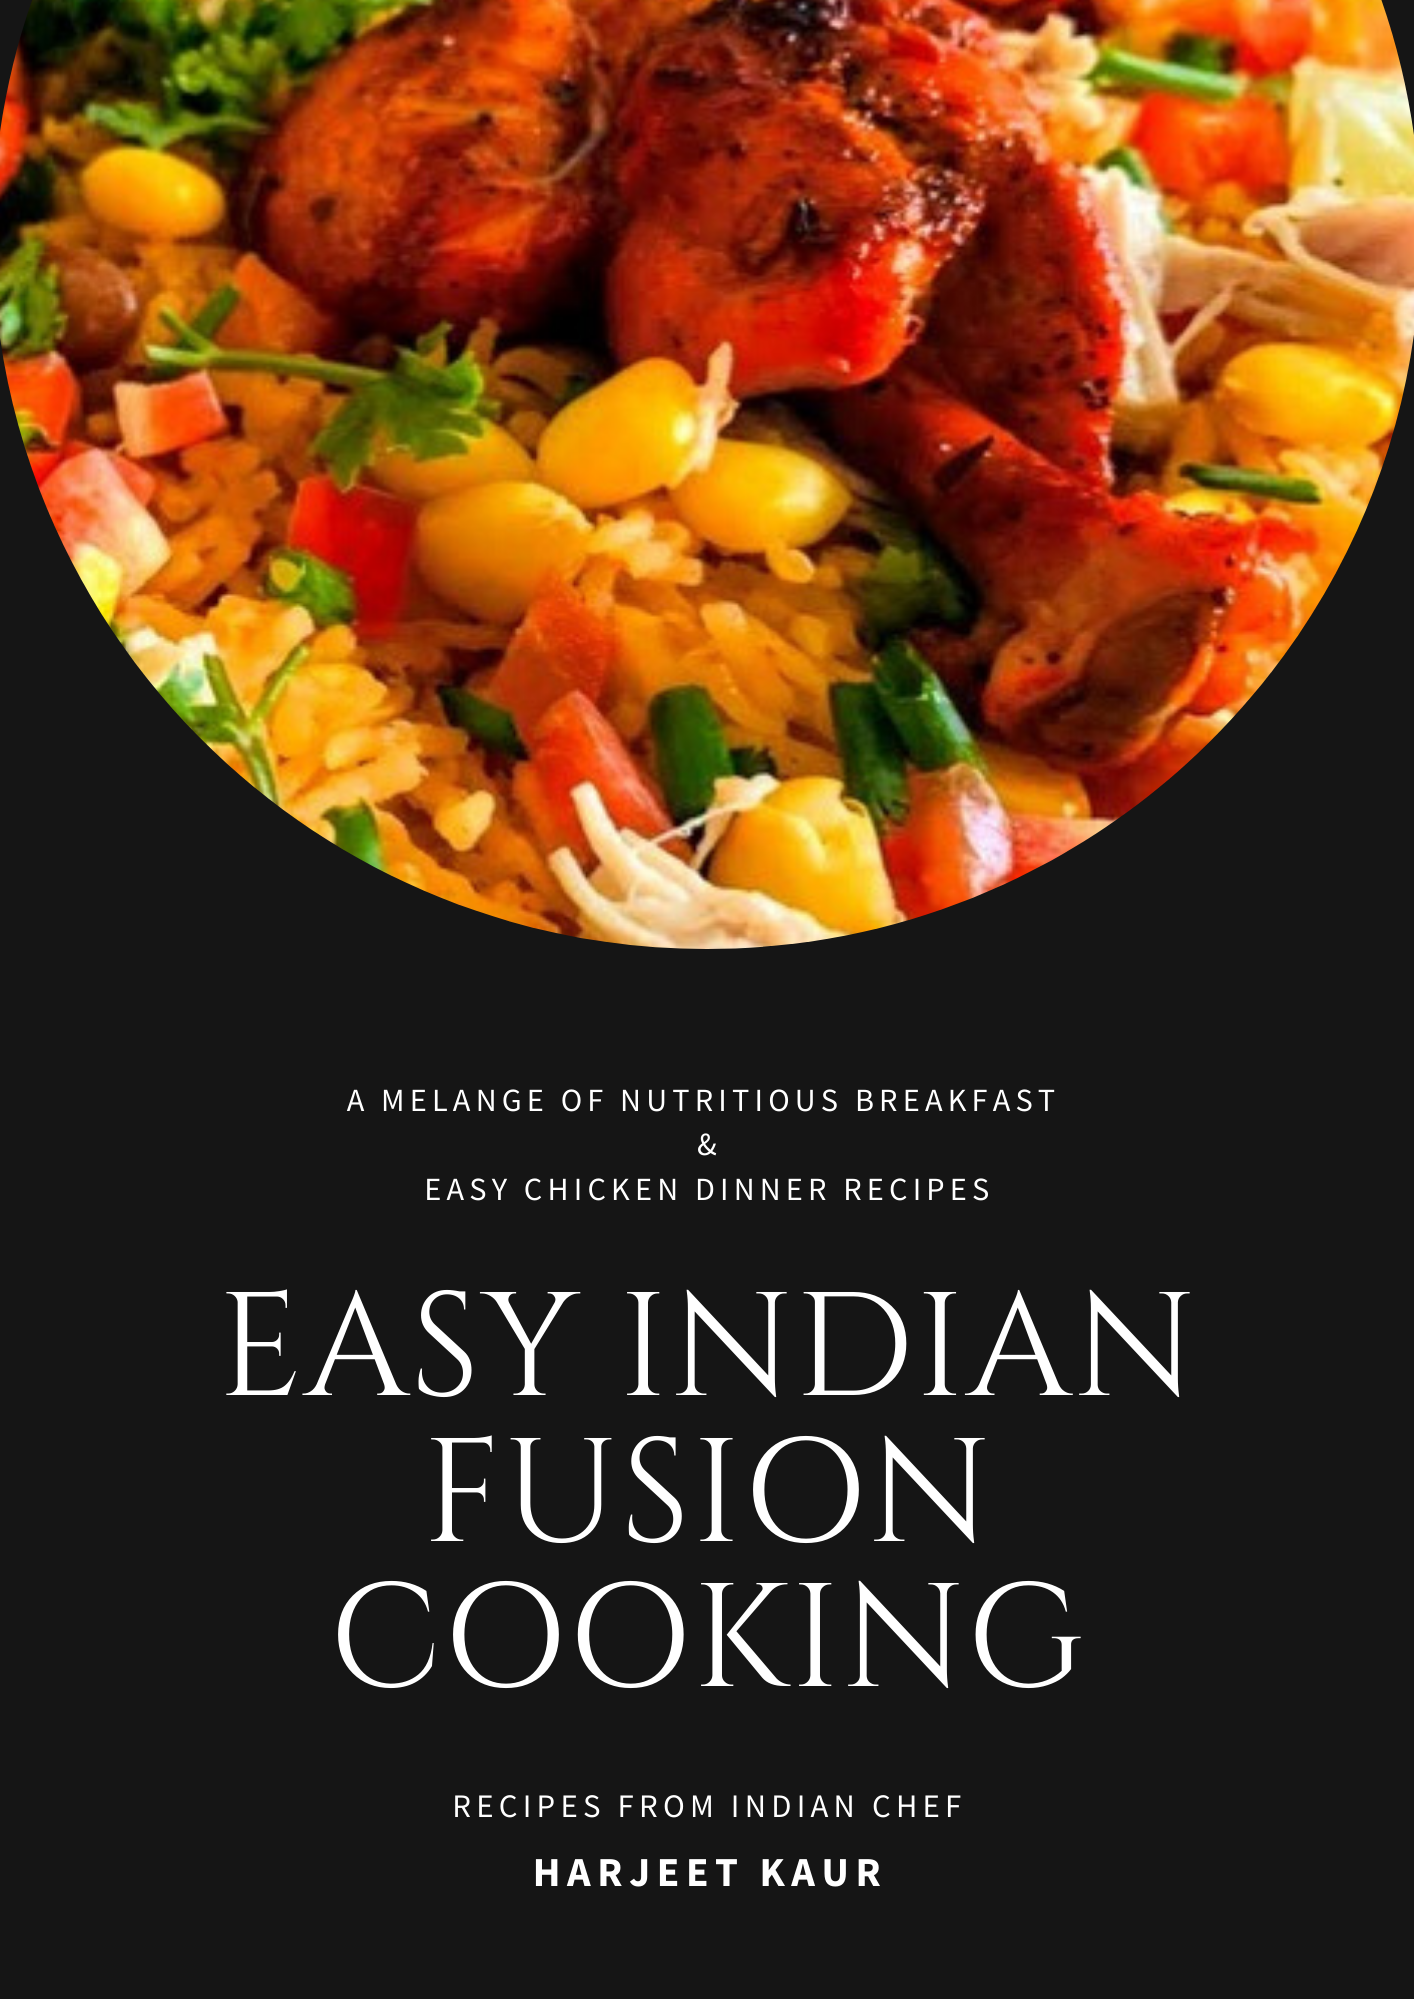 Easy Indian Fusion Cooking